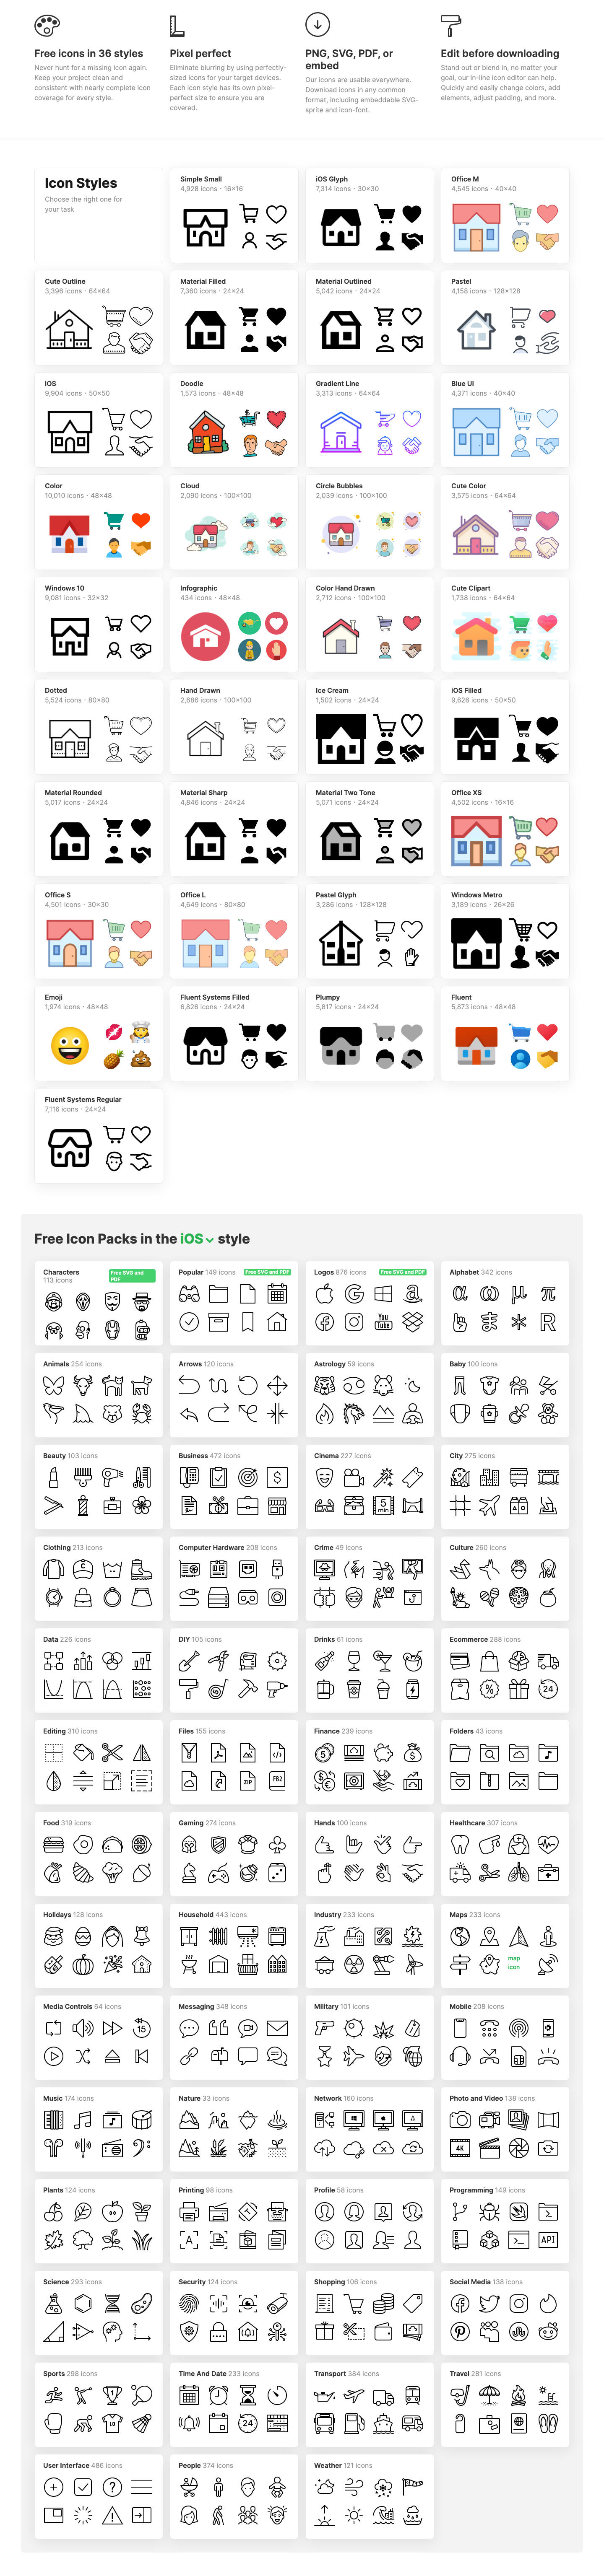 Icons8 Free Vector Icons - Get 169,500+ free icons for graphic design, UI, social media, and mobile. Search for static and animated icons with consistent quality. PNG, SVG, GIF, AE formats.